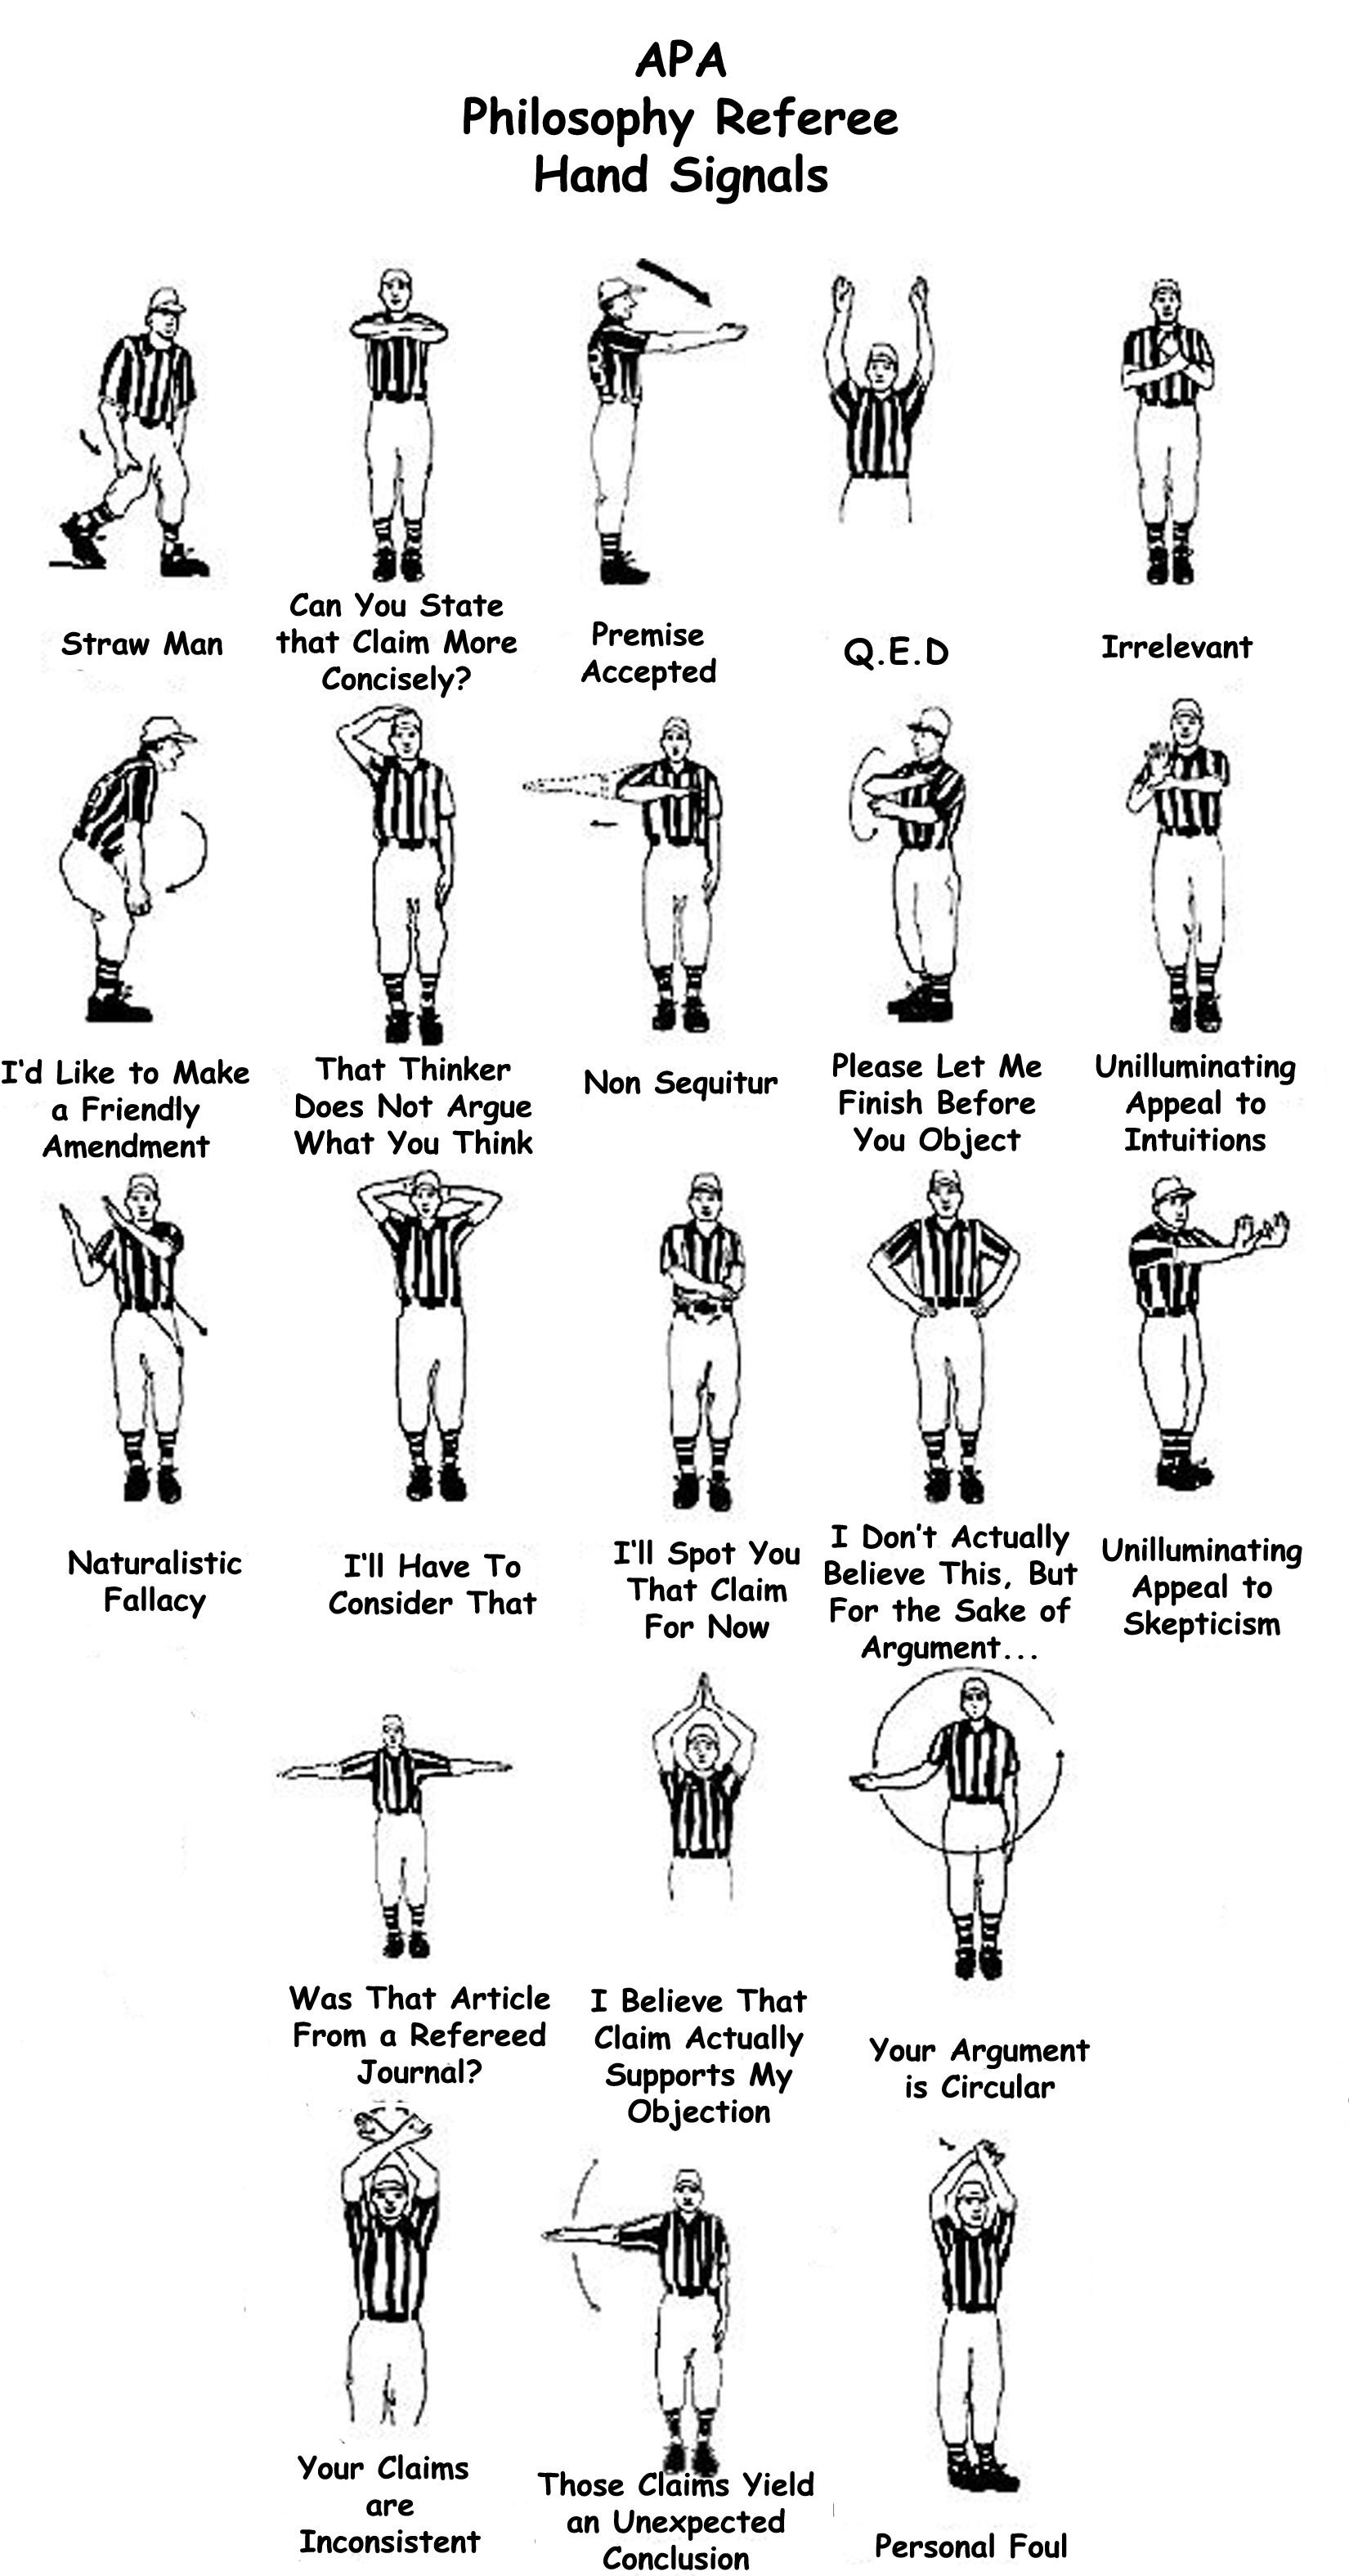 If philosophy were a sport, the referees would need hand